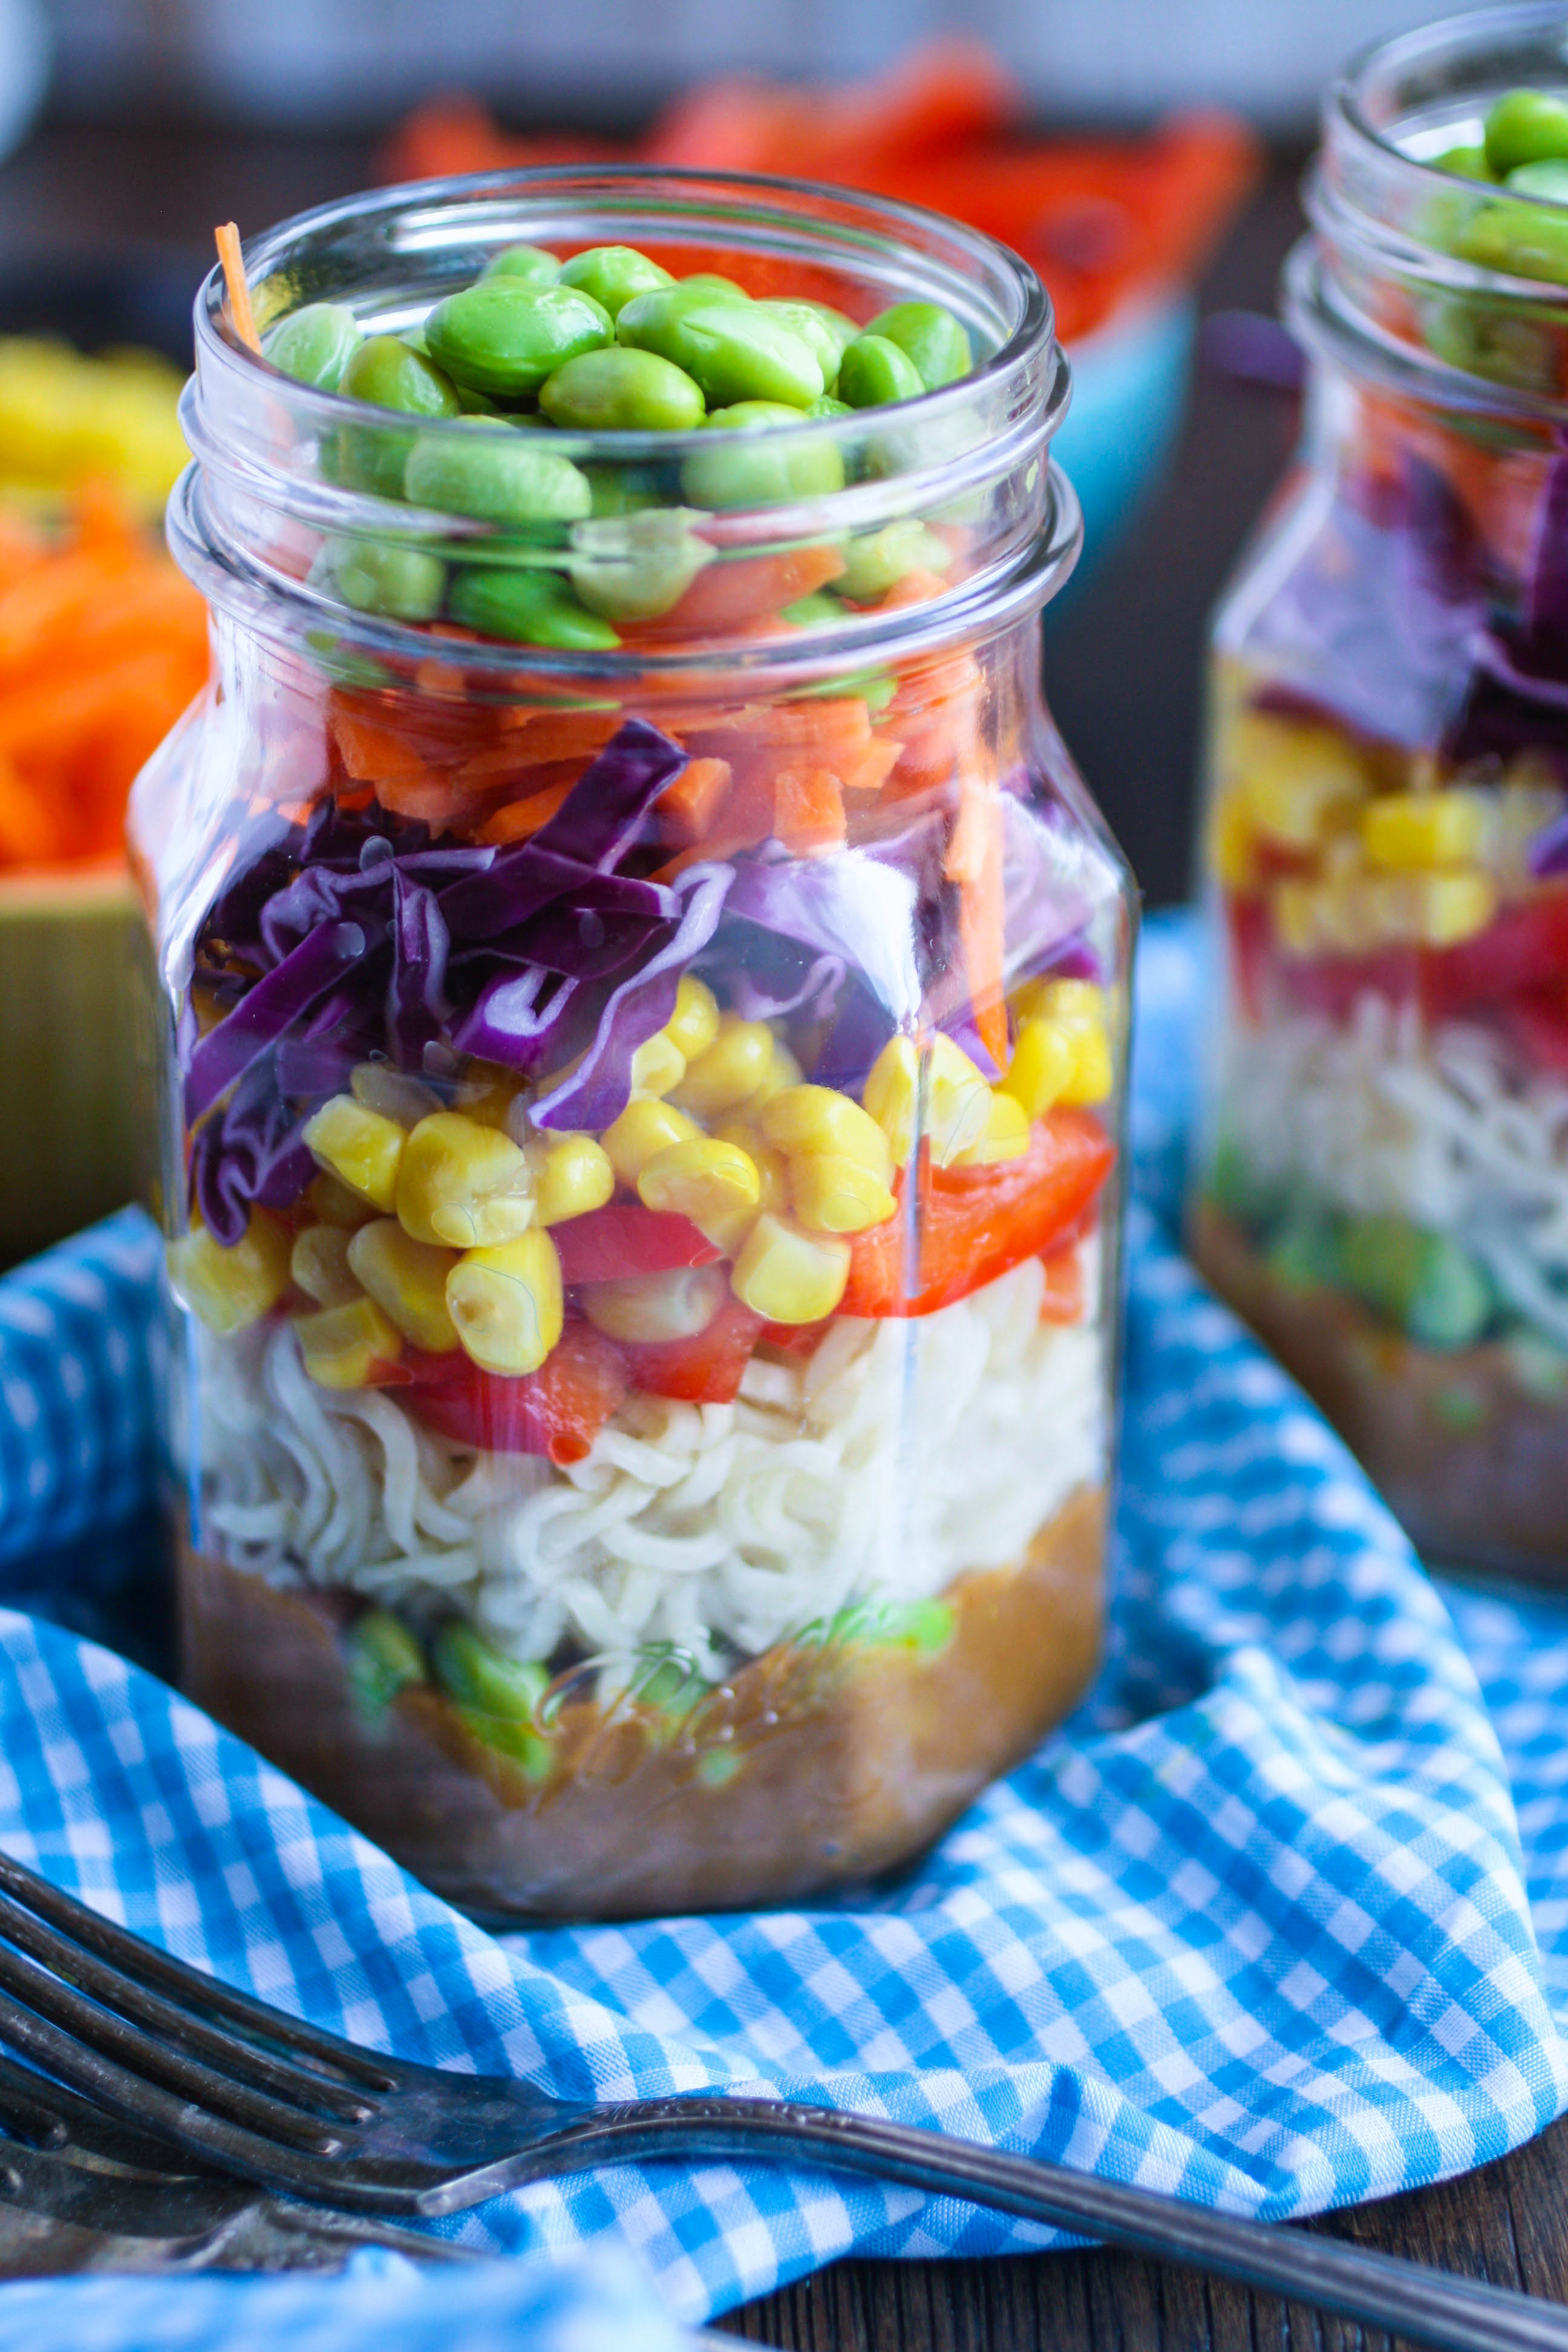 Asian Noodle Salad in a Jar with Spicy Peanut Dressing offers great color and flavors. It's convenient to pack, and delicious to eat!